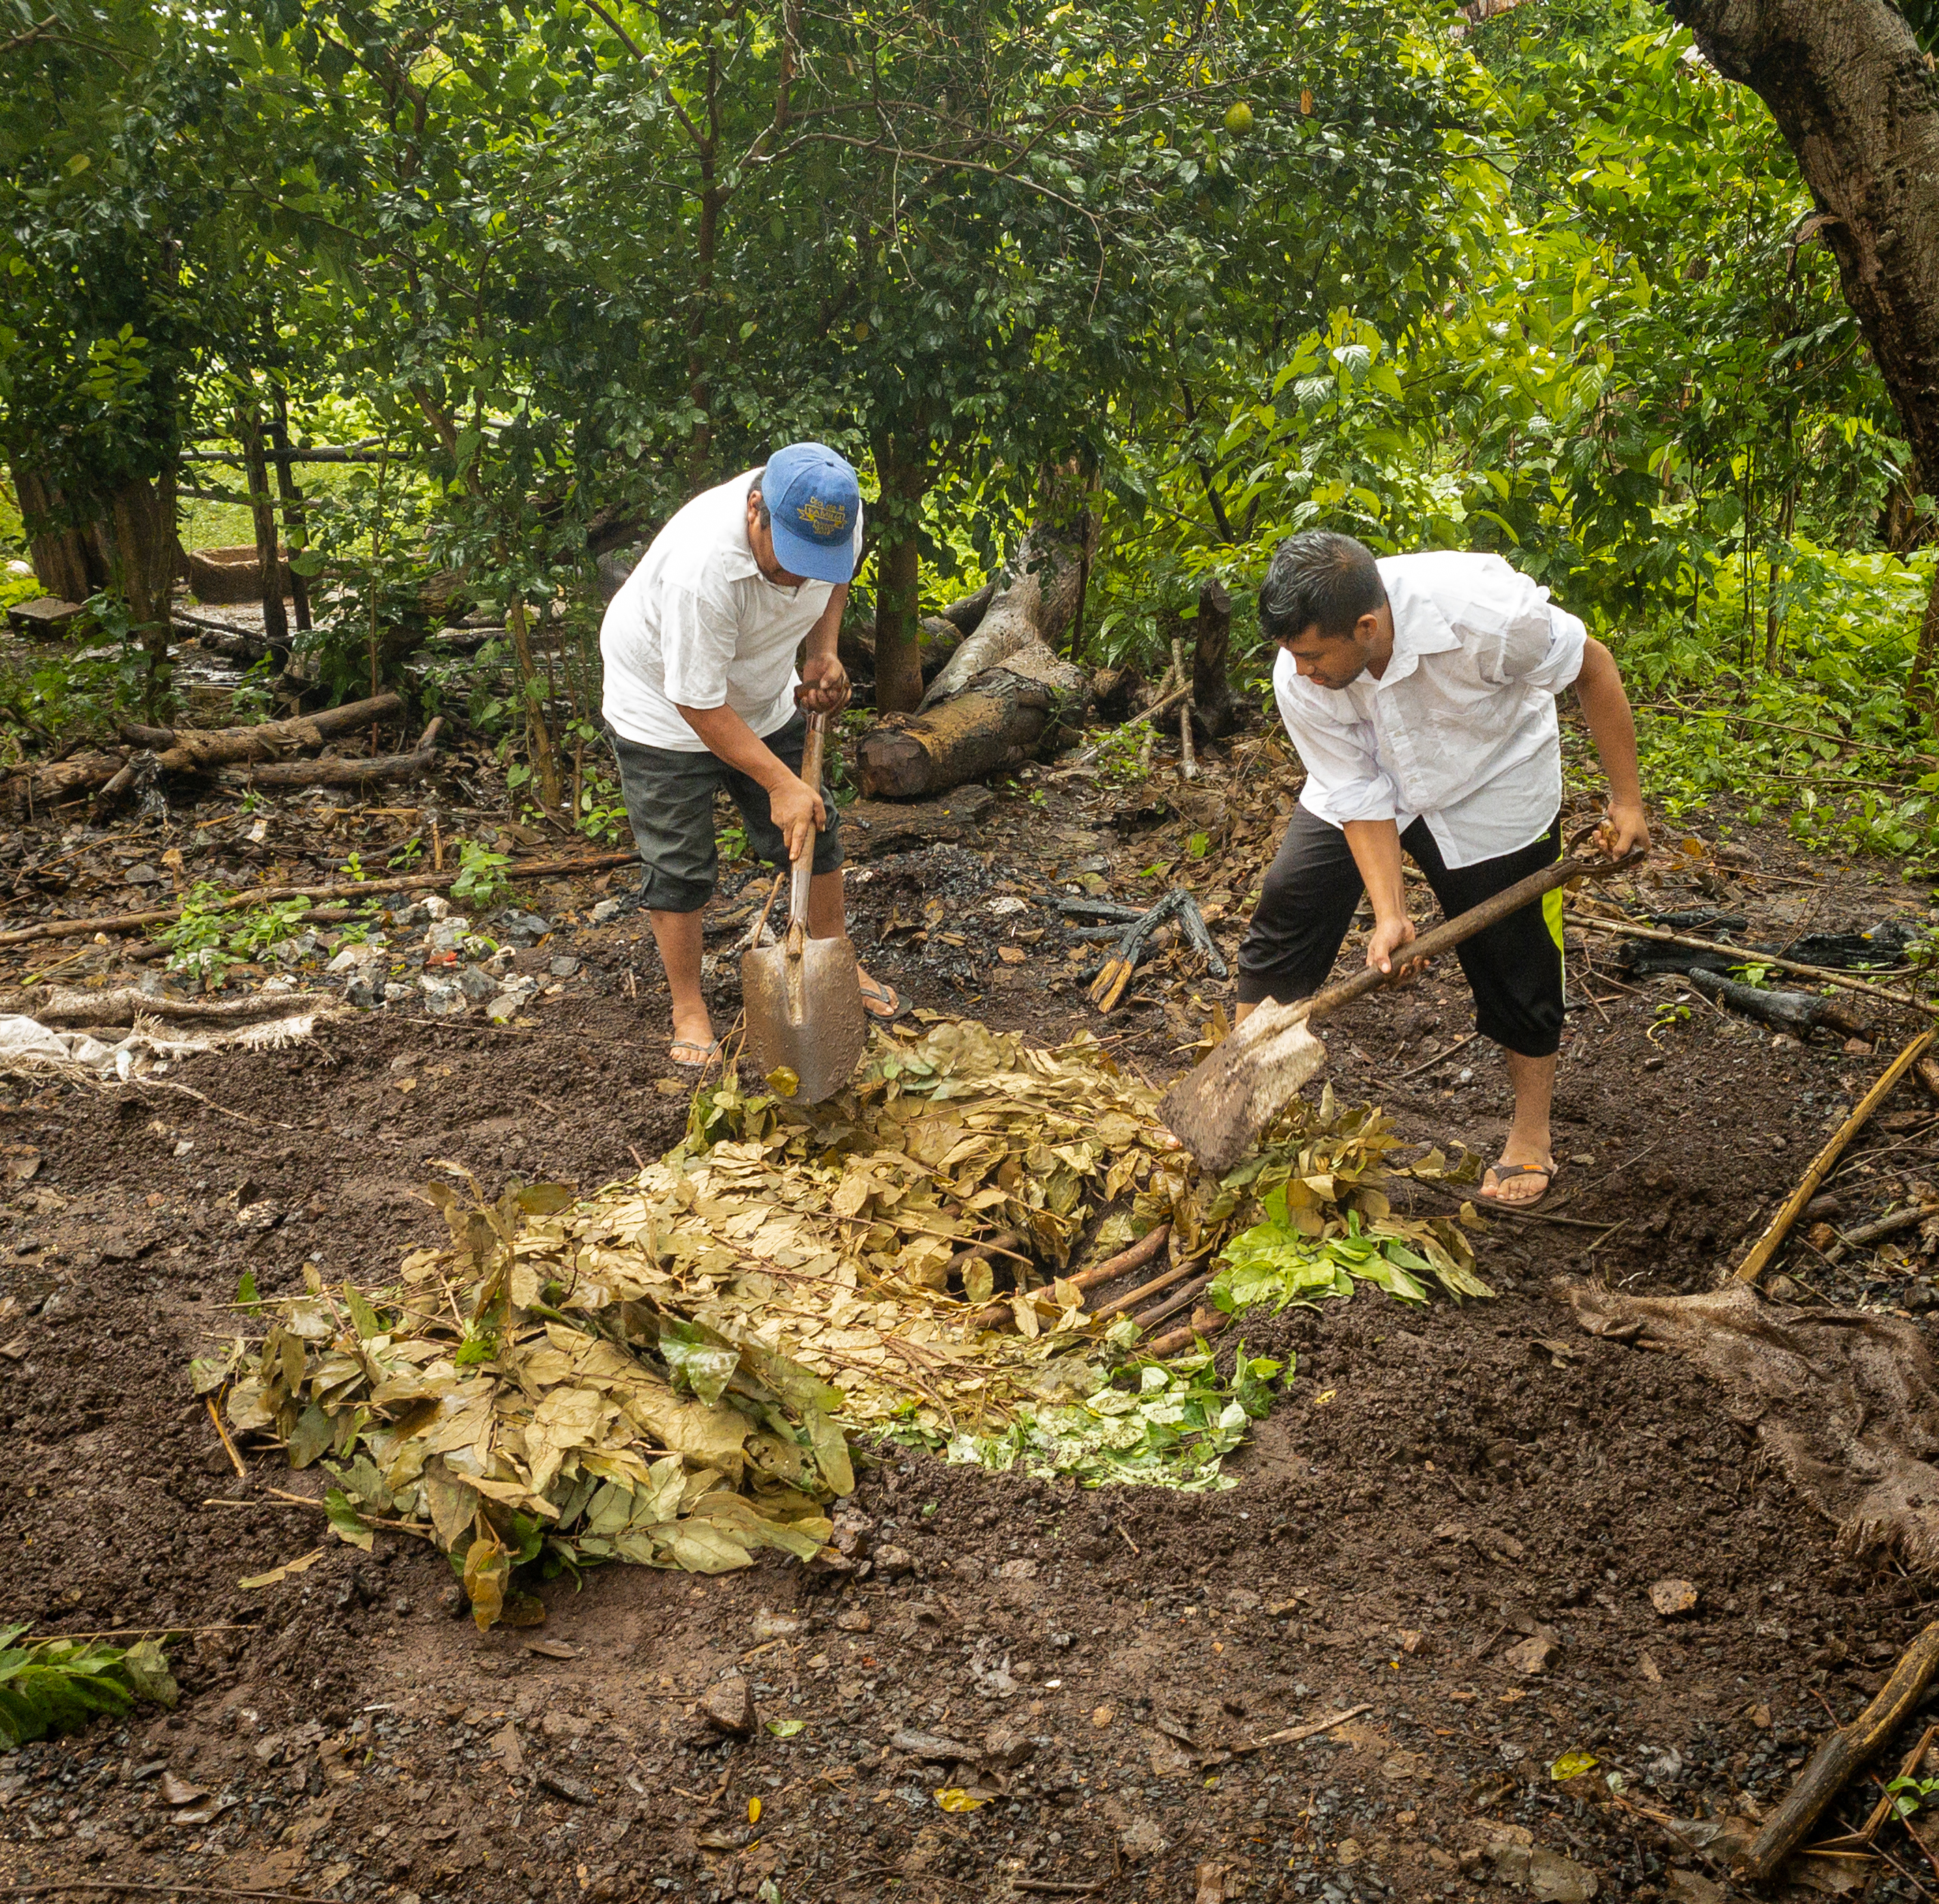 pib is a traditional Mayan underground oven